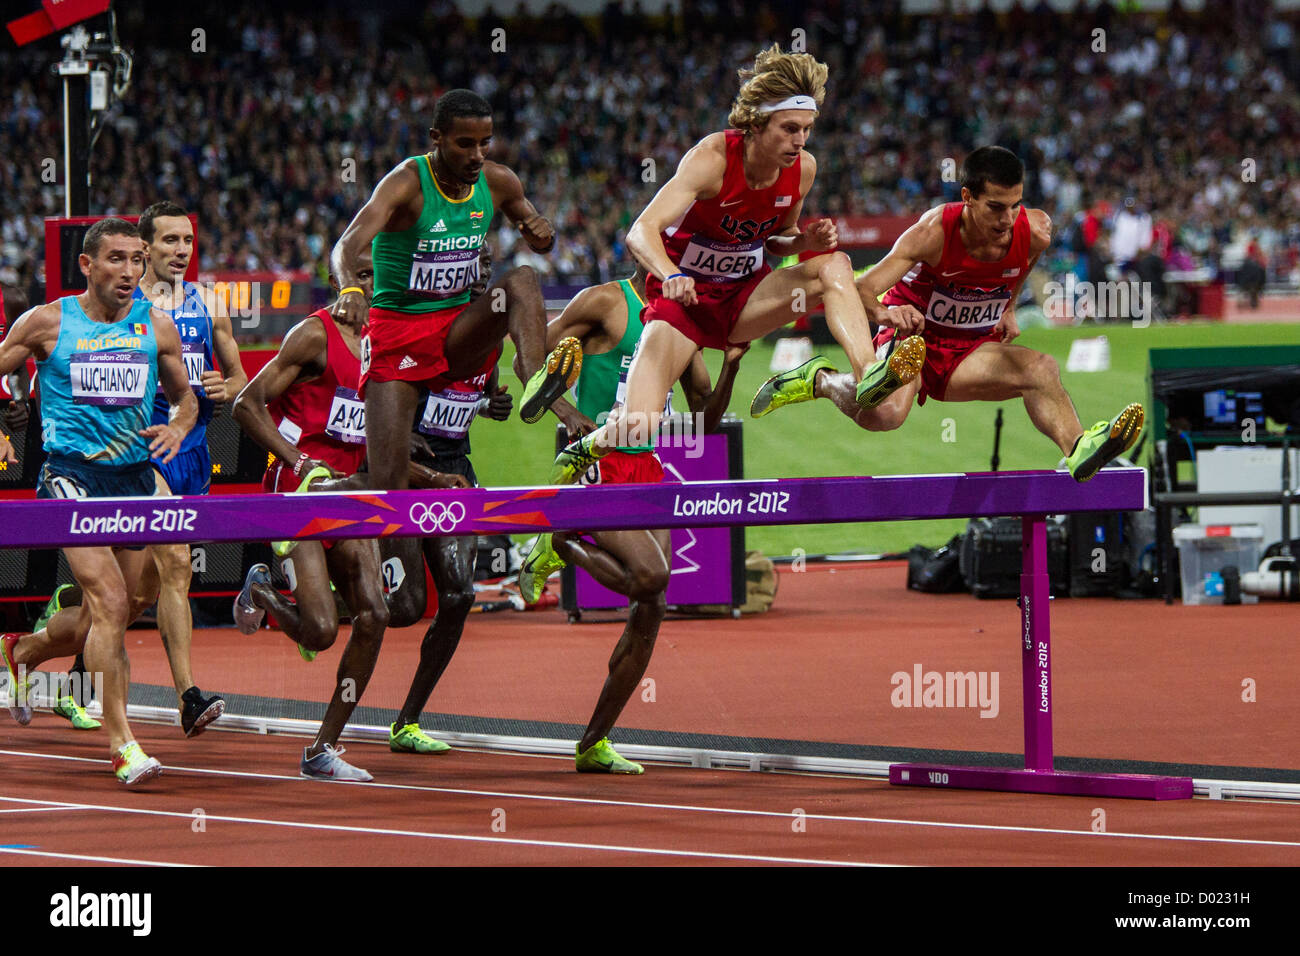 Men's steeplechase action at the Olympic Summer Games, London 2012 Stock Photo